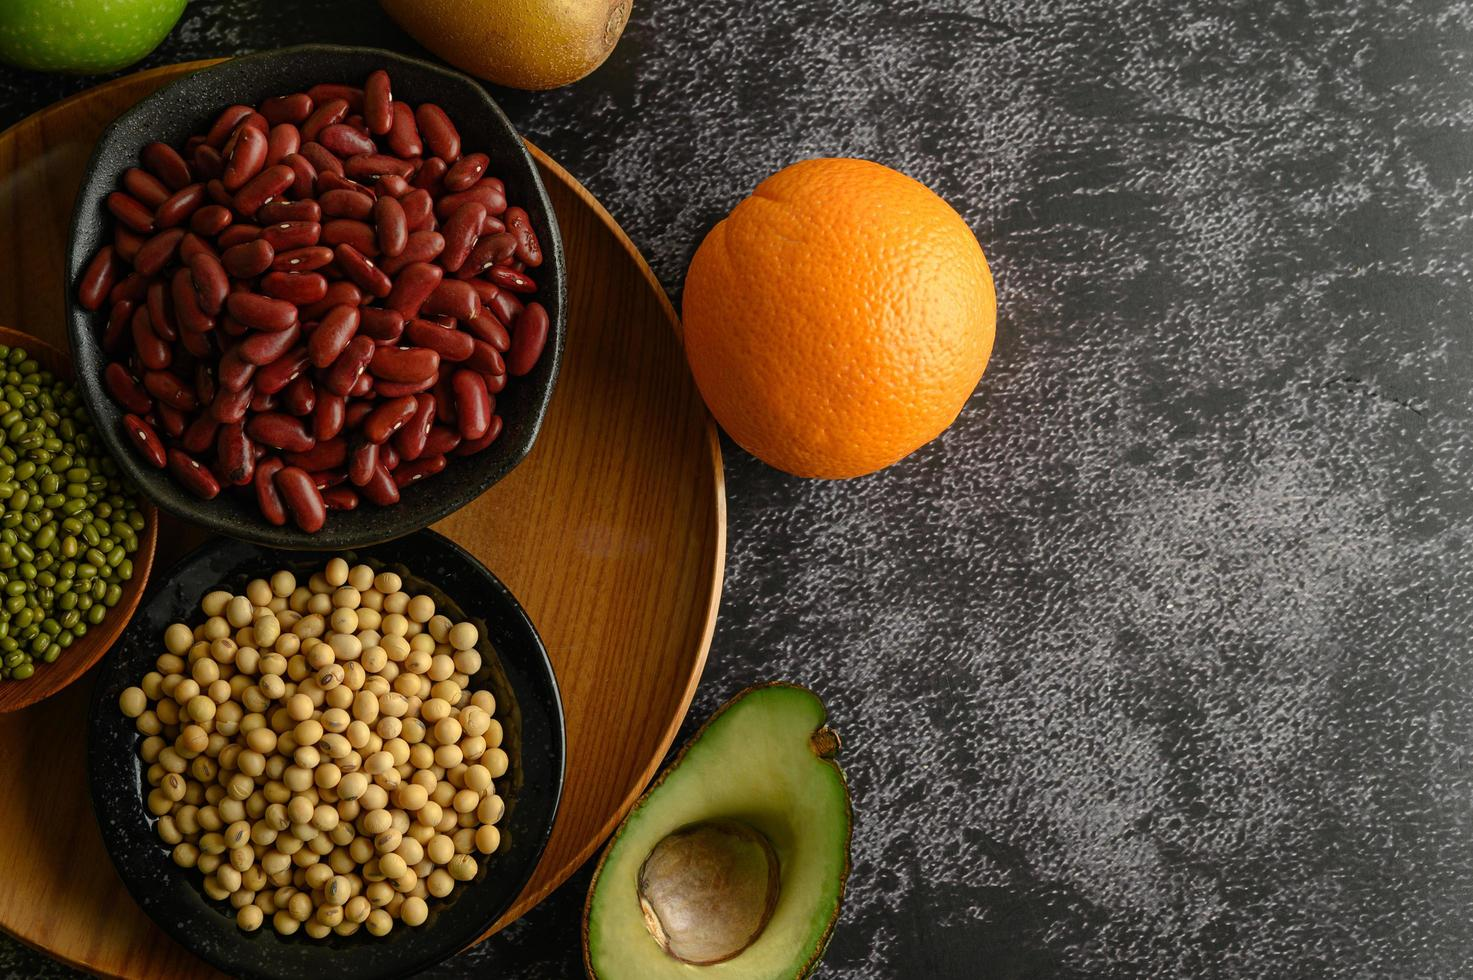 Legumes and fruit on black cement floor background photo